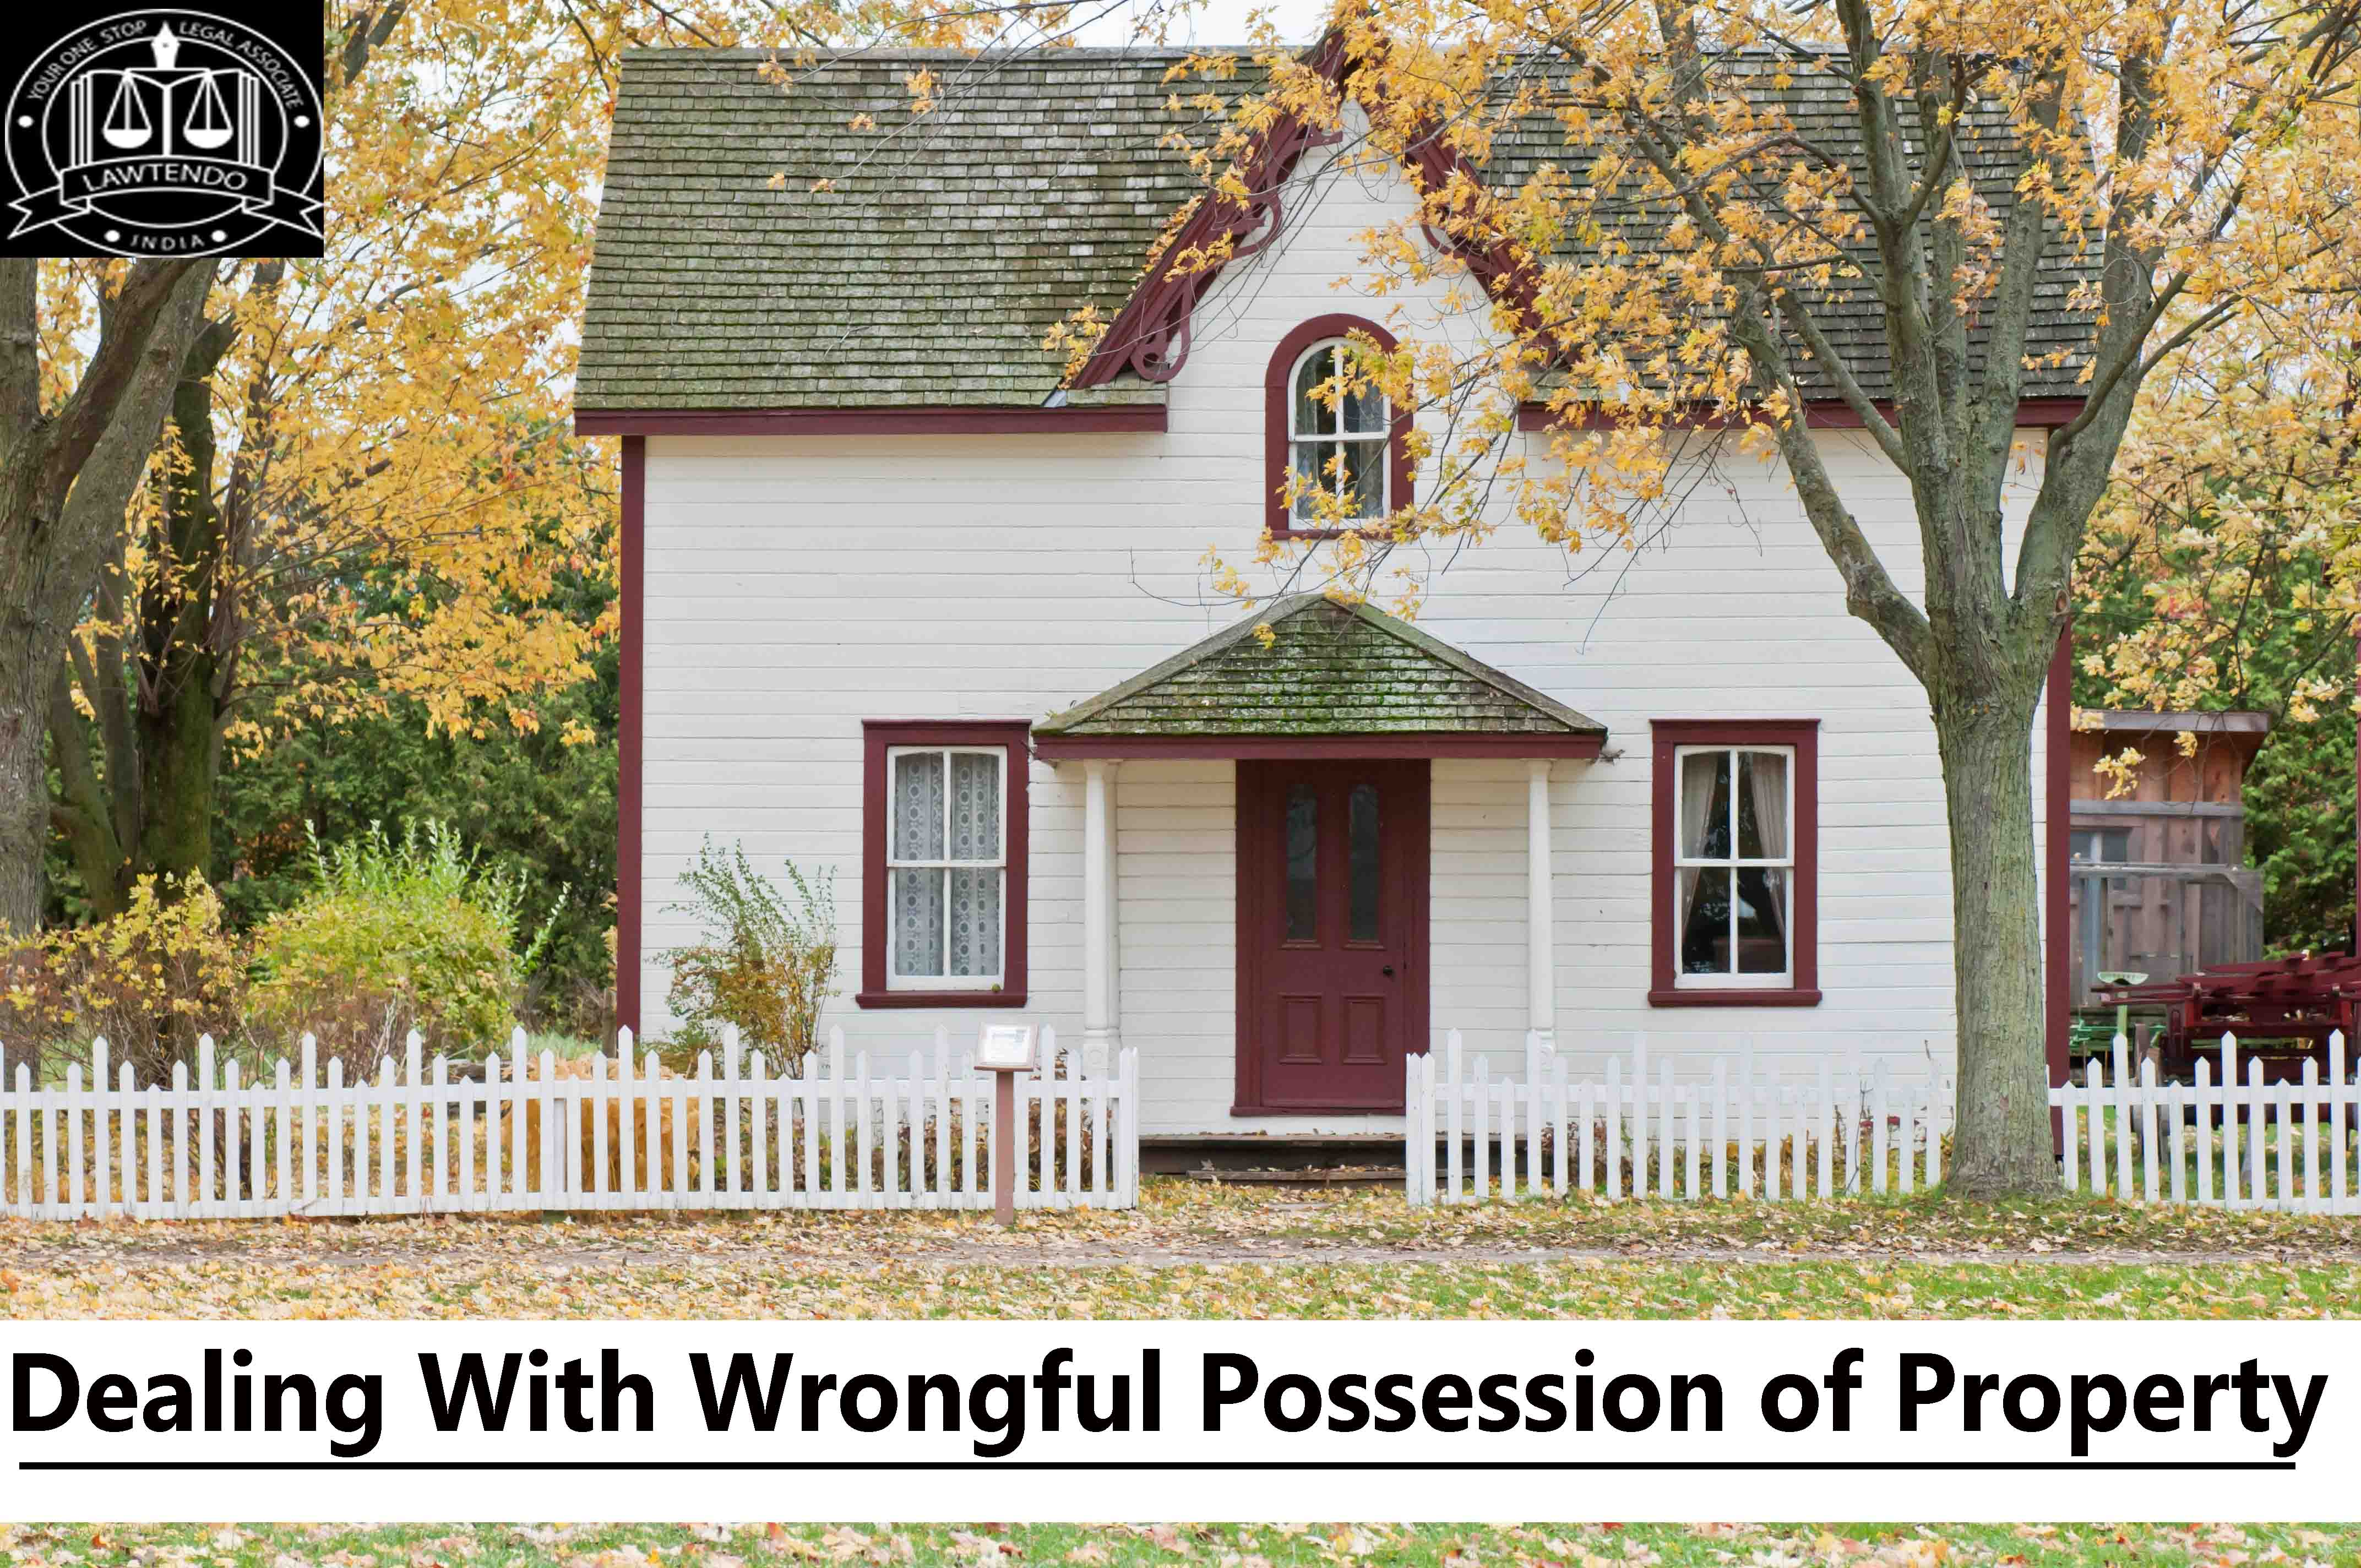 Dealing With Wrongful Possession of Property